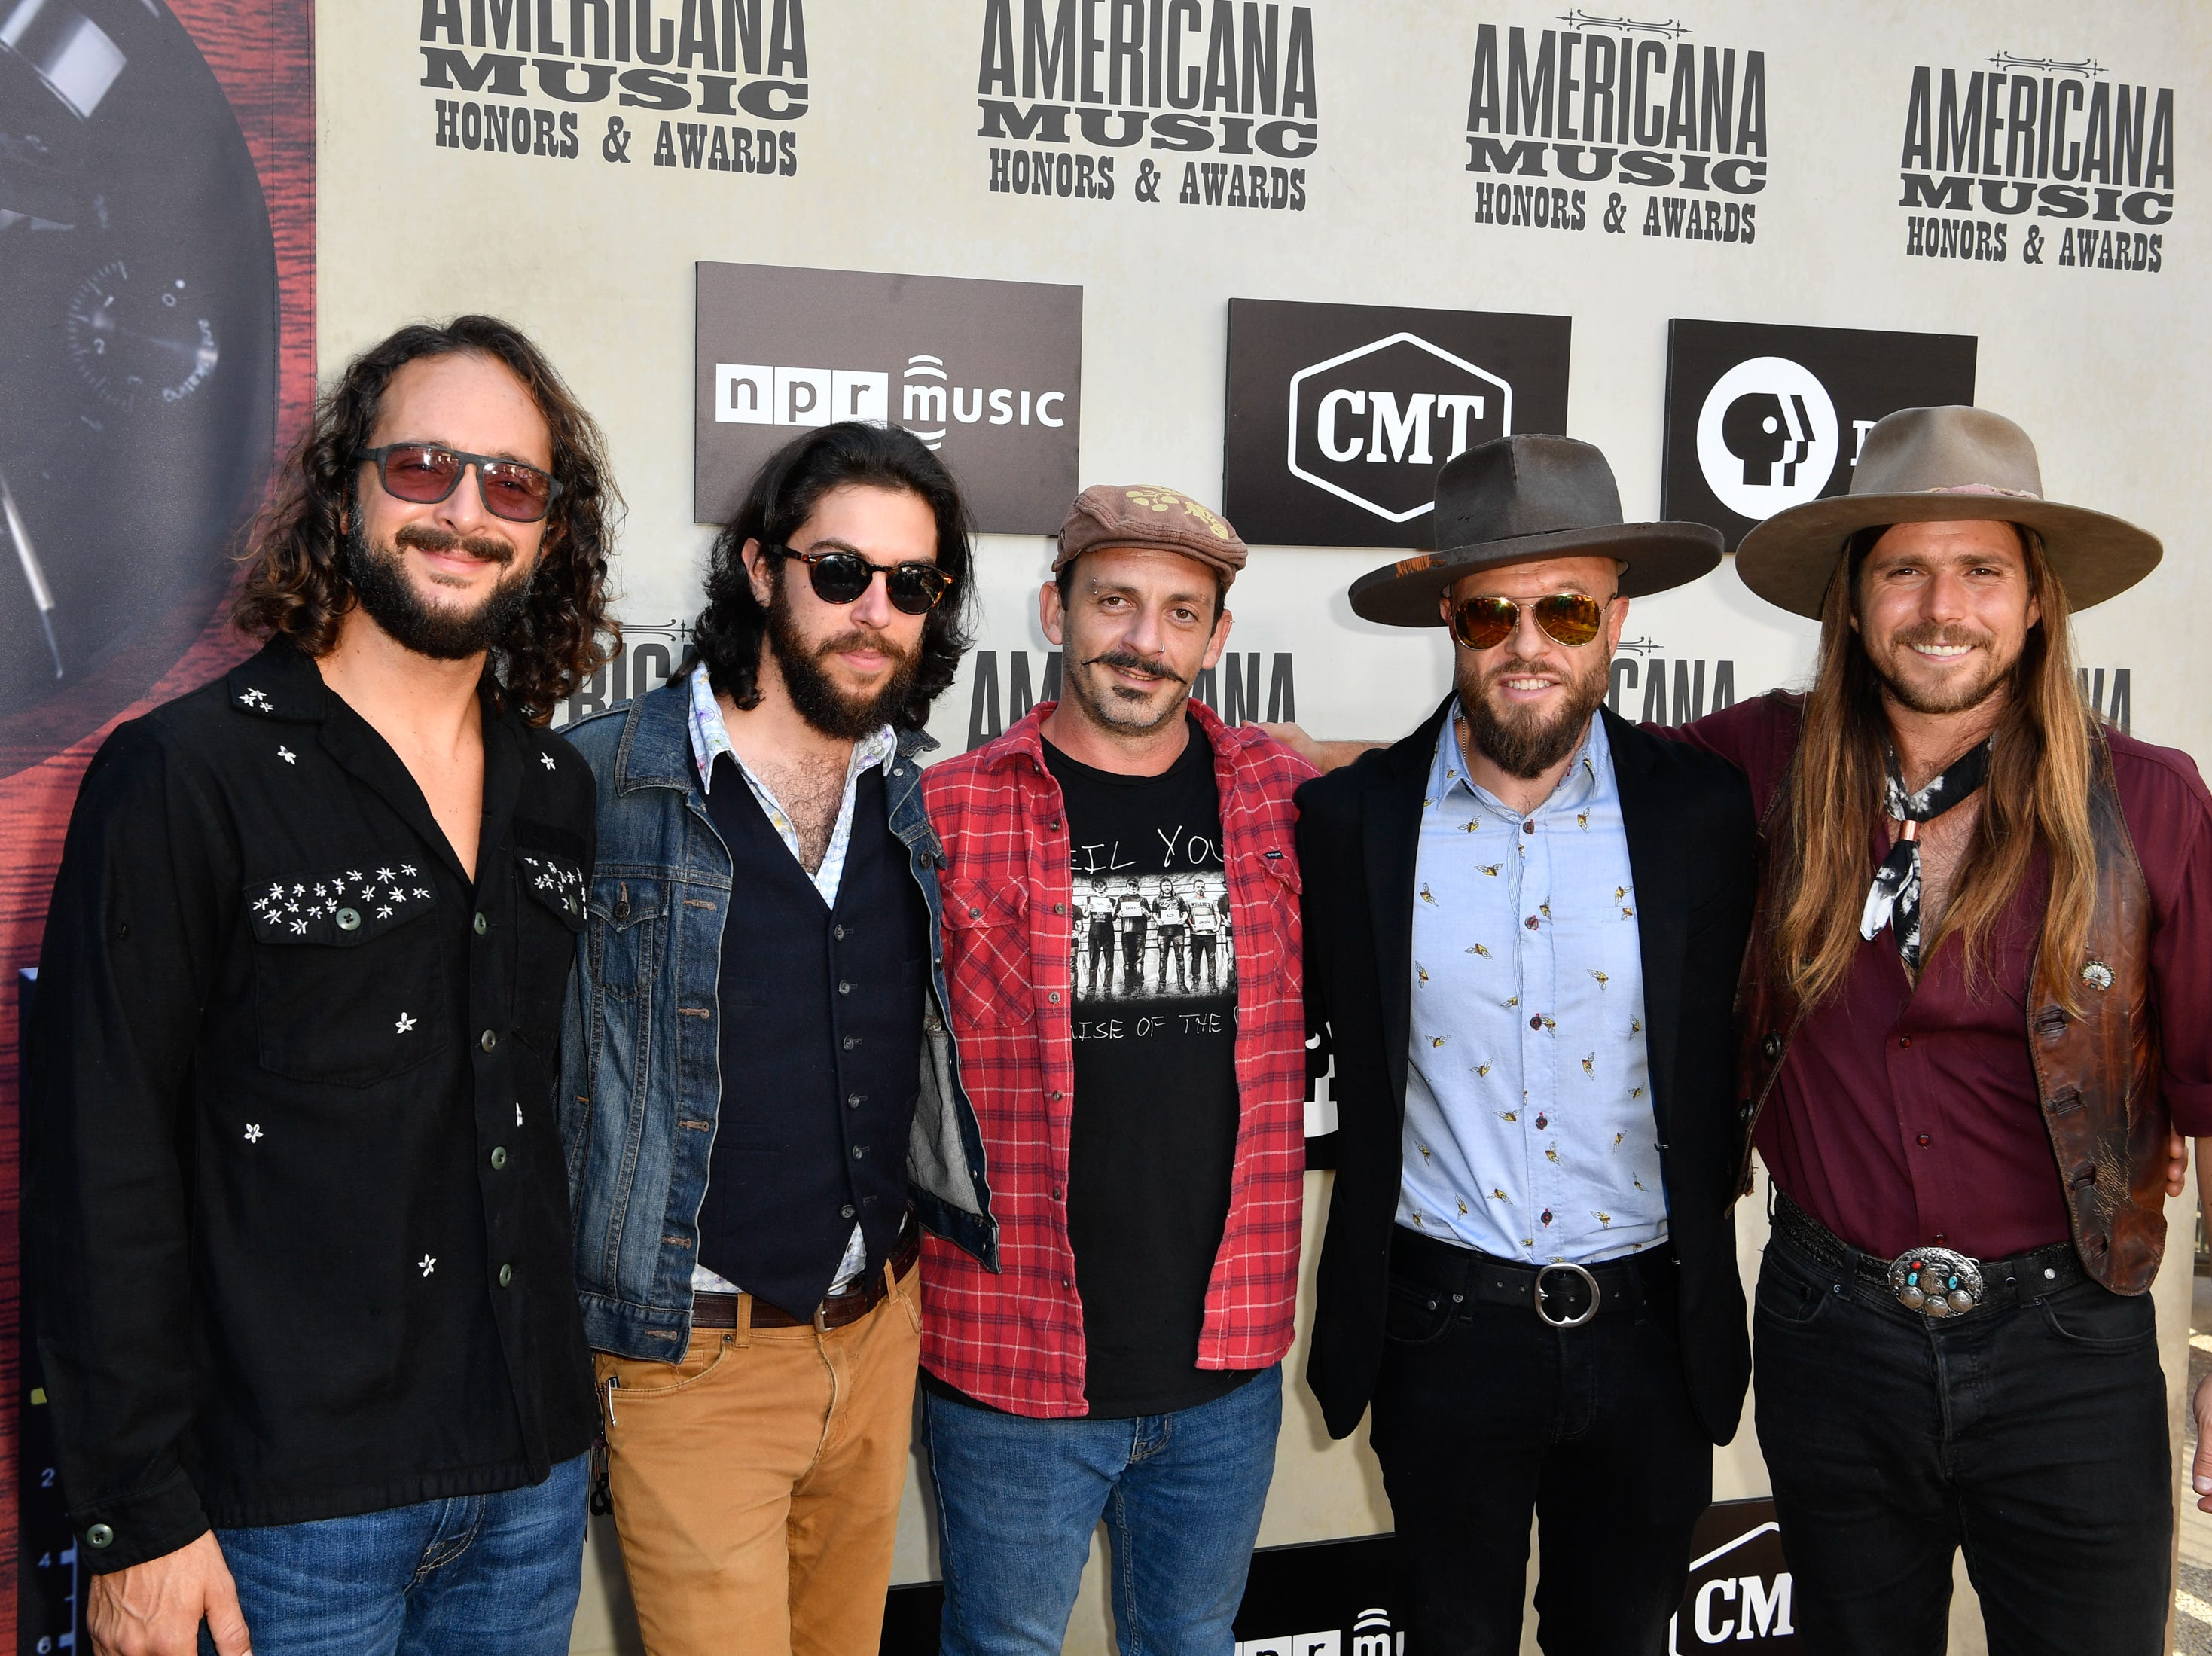 Lukas Nelson and Promise of the Real pose on the red carpet before the 2018 Americana Honors and Awards show at the Ryman Auditorium in Nashville, Tenn., Wednesday, Sept. 12, 2018.